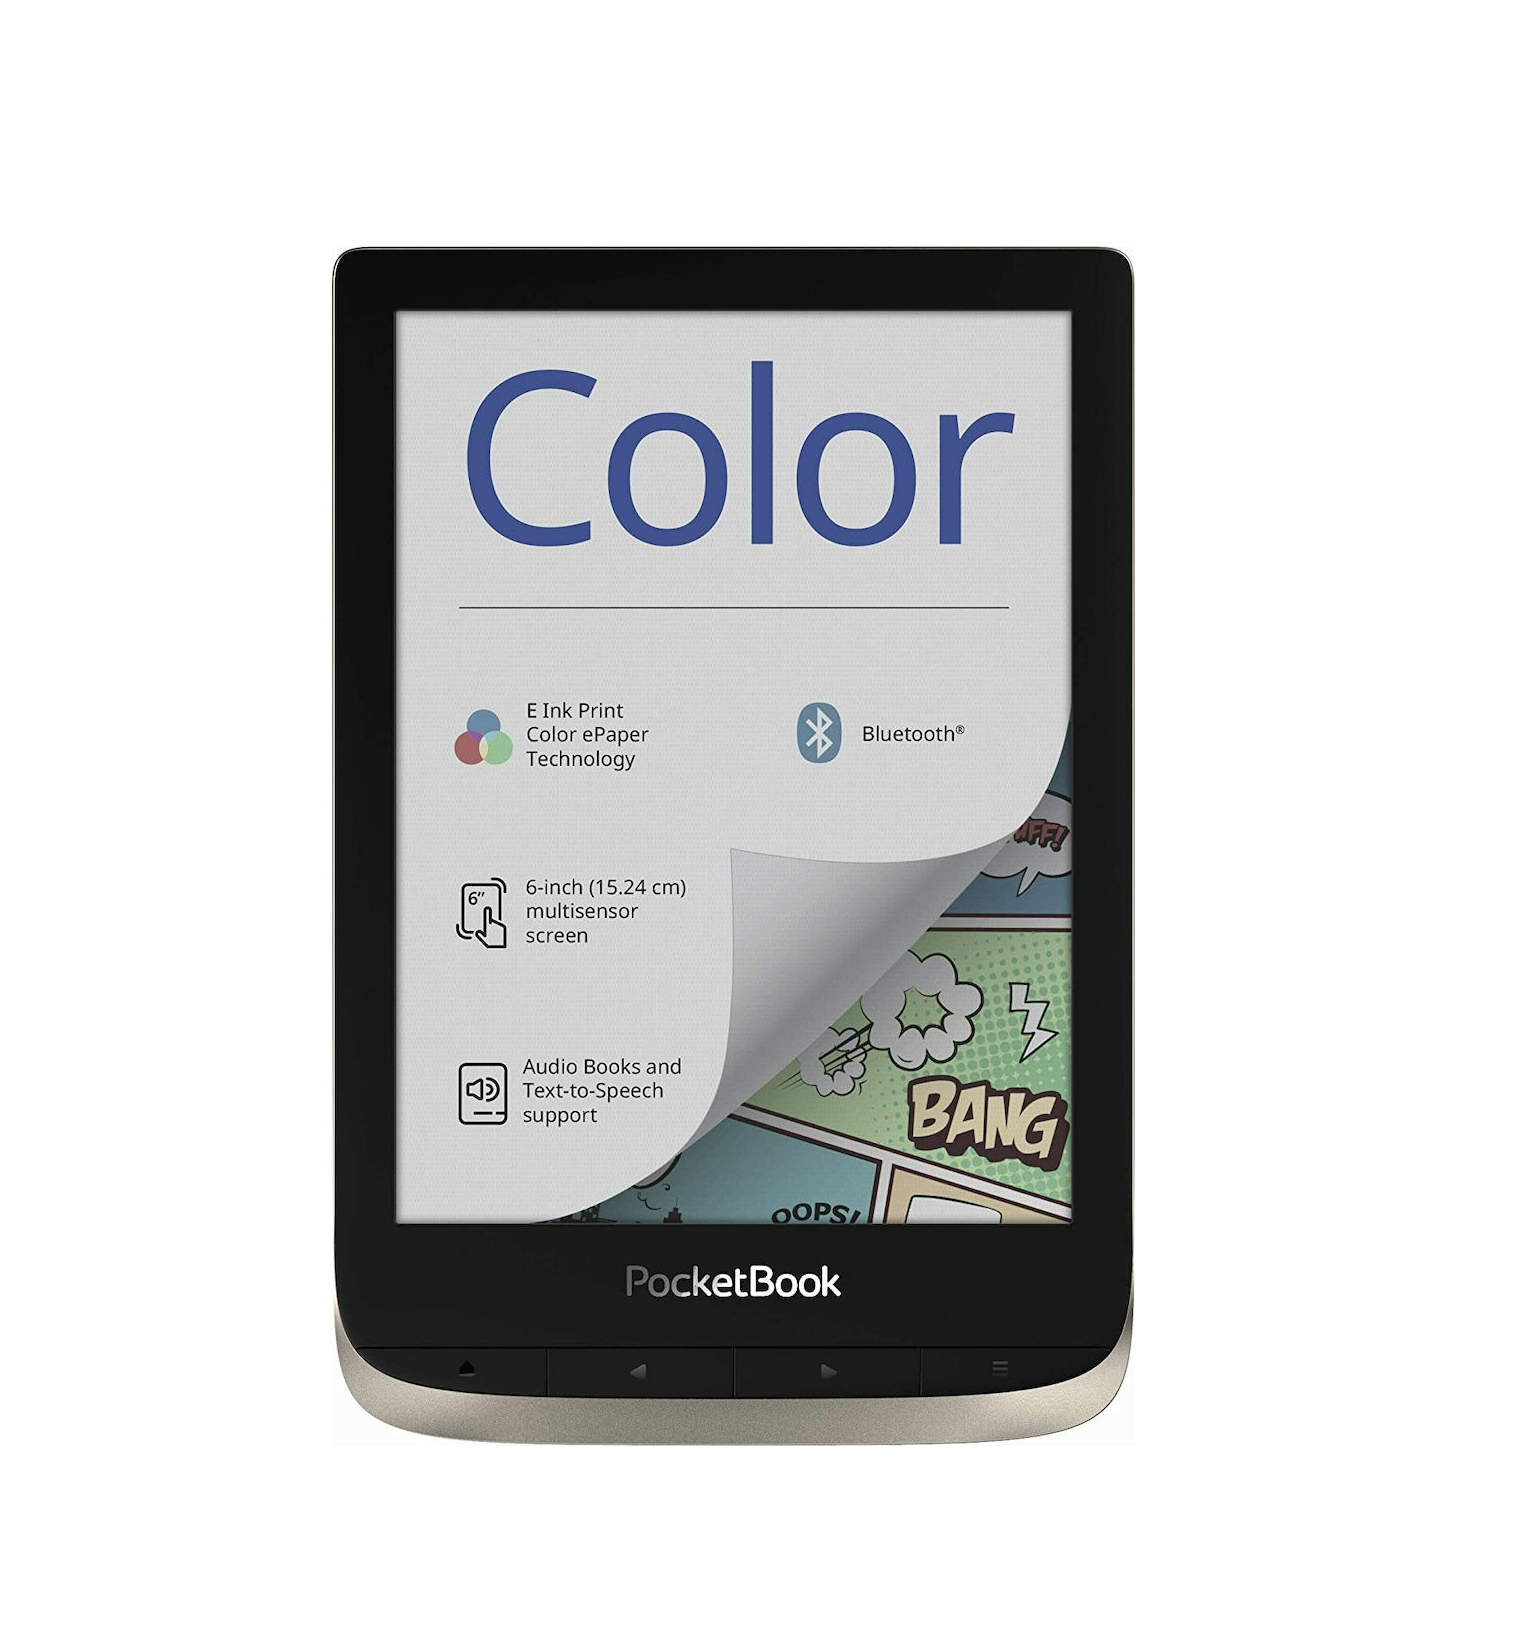 Pocketbook Color Silver Moon (16GB) Ebook Reader